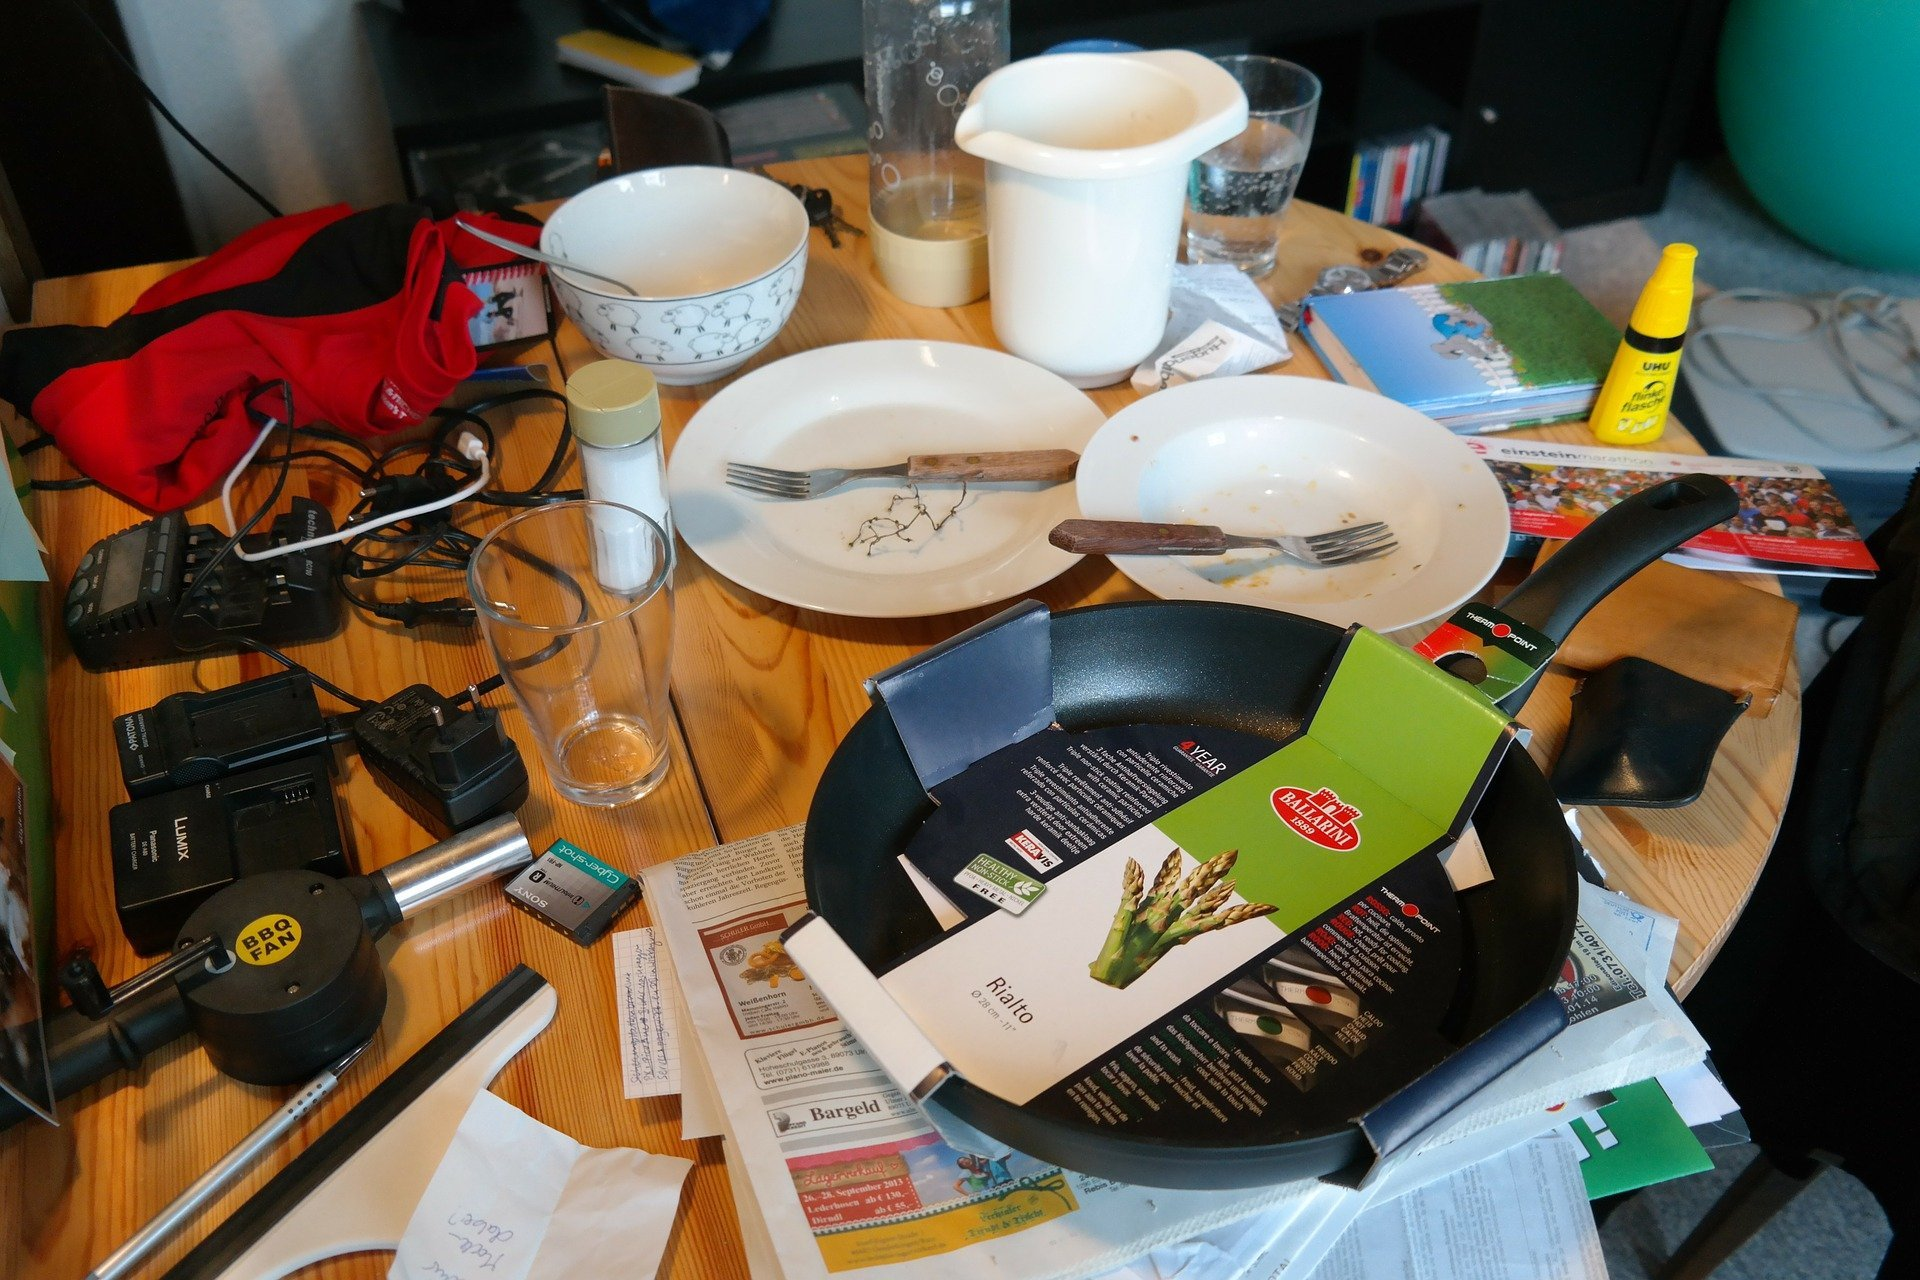 Cluttered mess on the dinner table. | Source: Hans Braxmeier/Pixabay